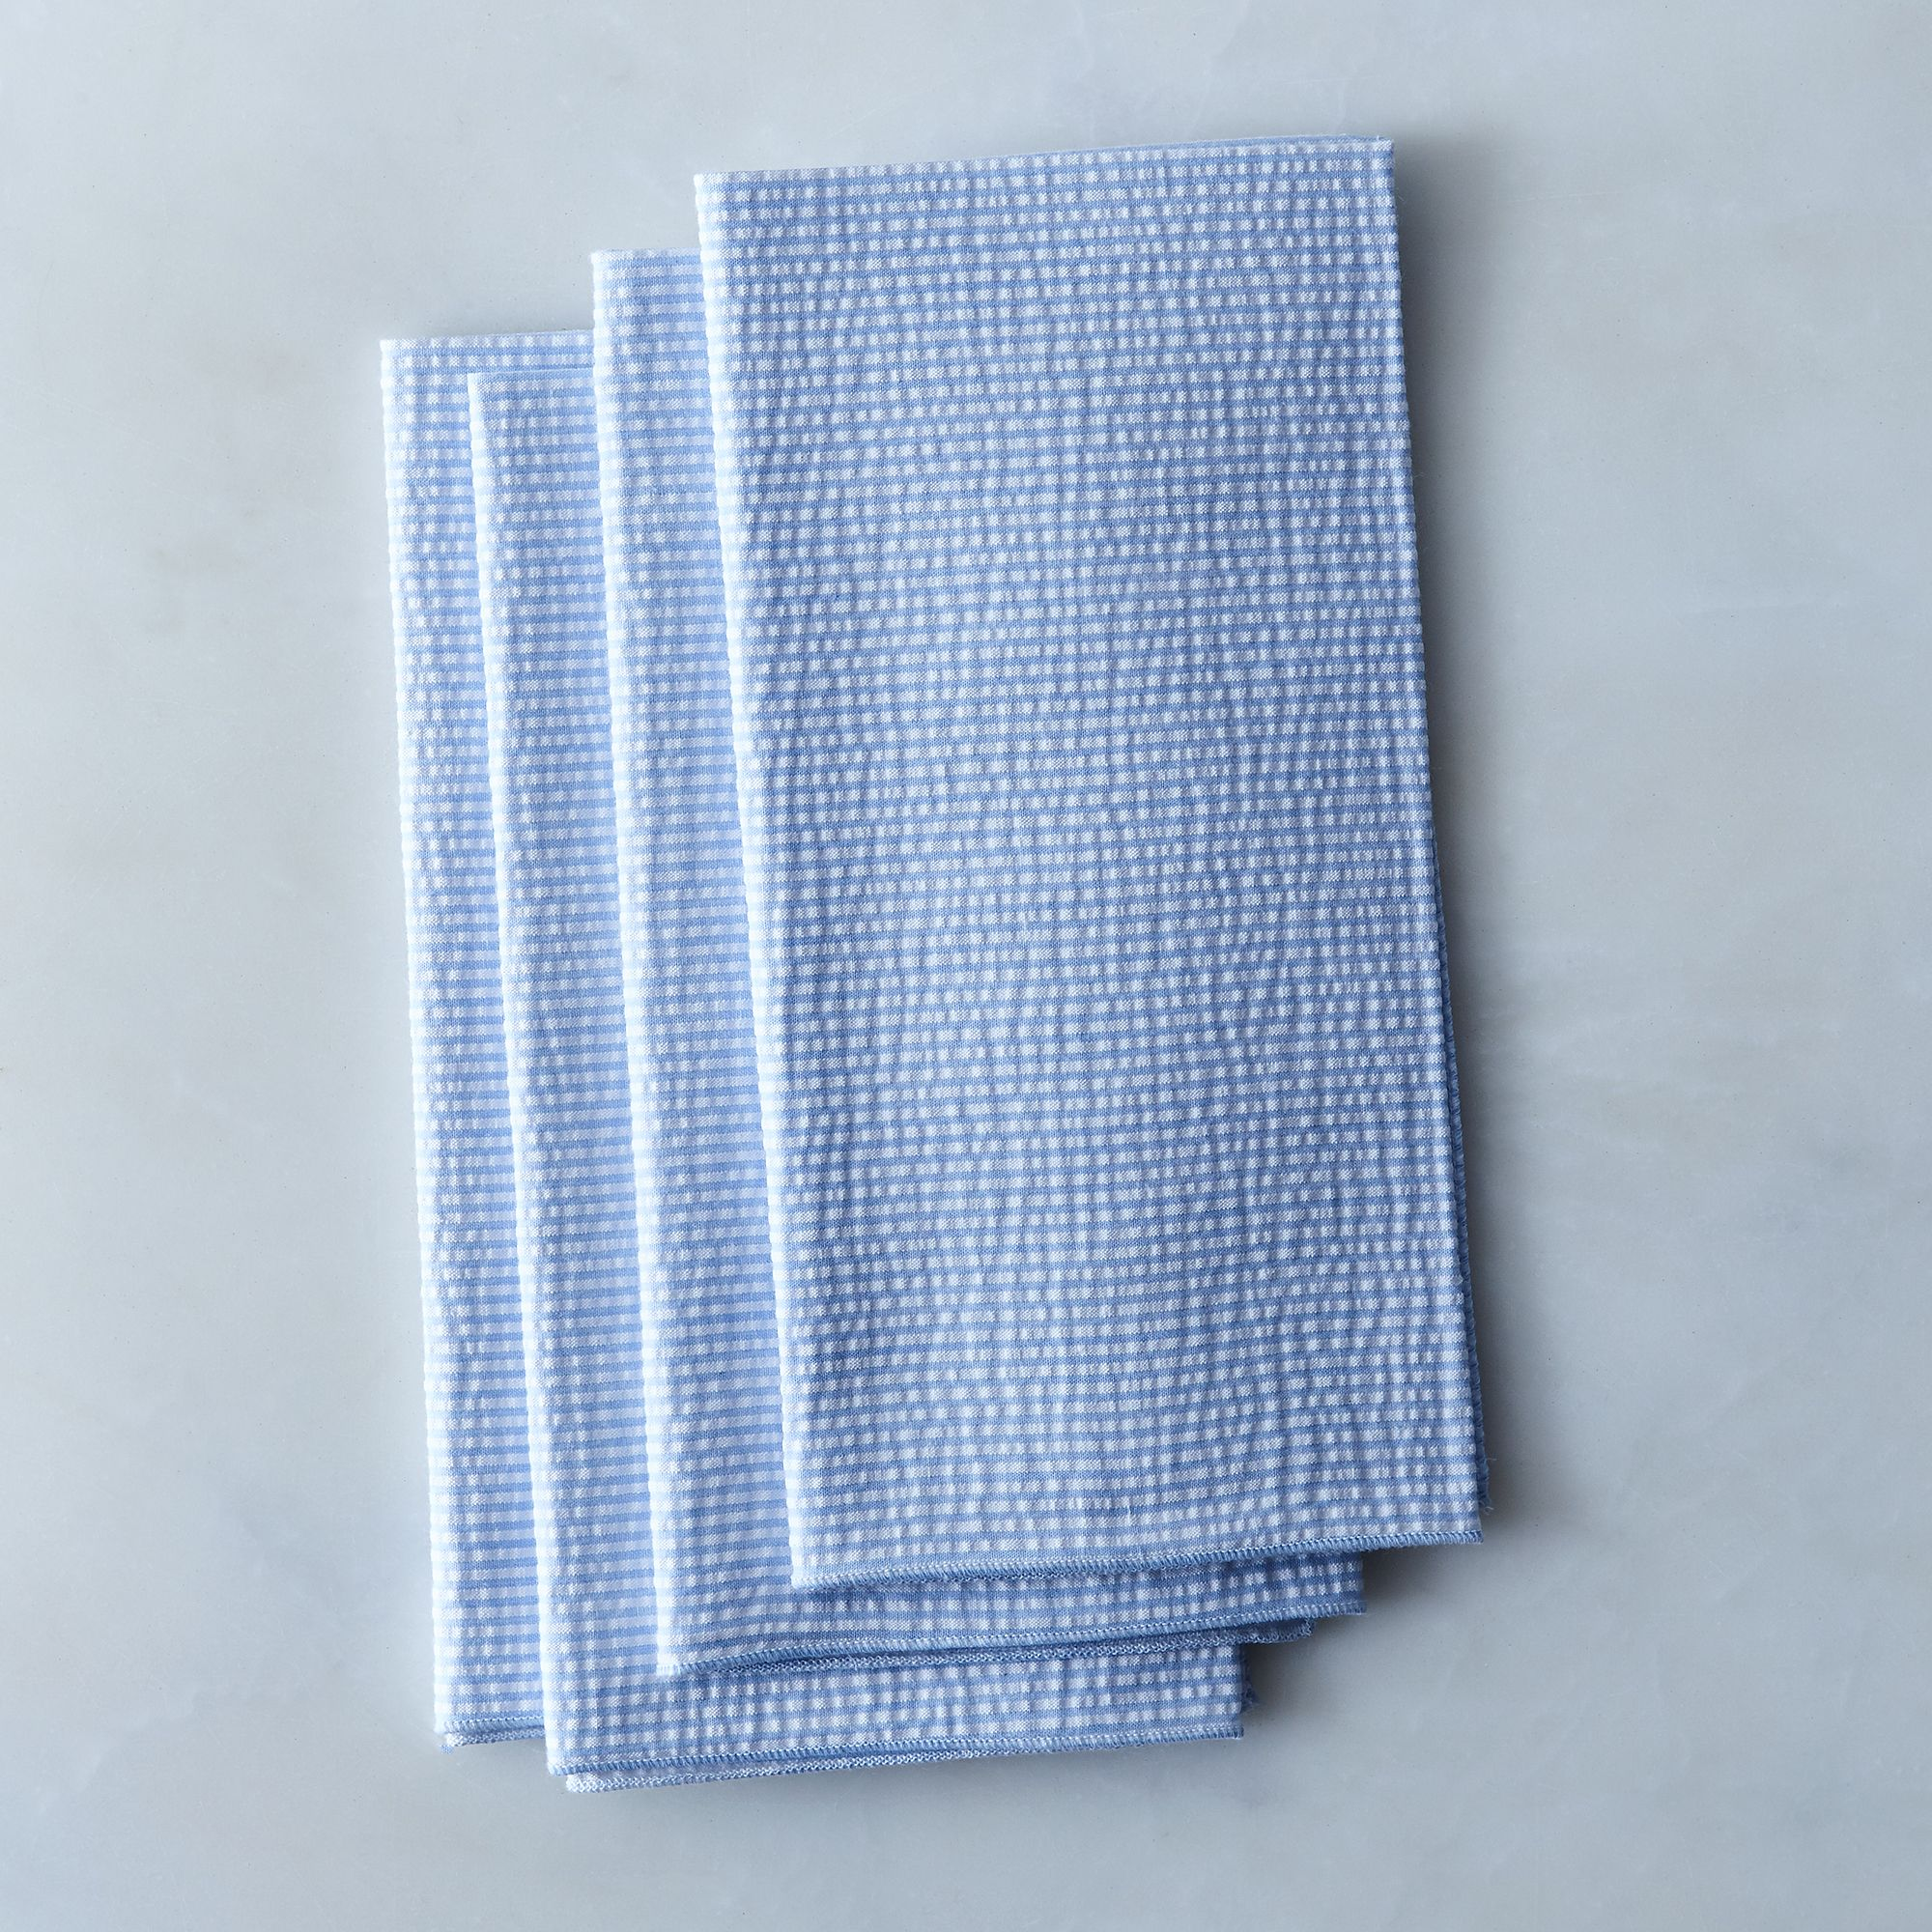 A5f92572 8300 4d85 80db 01a01dfddd3f  2017 0413 dot and army seersucker napkins set of 4 blue silo rocky luten 11866